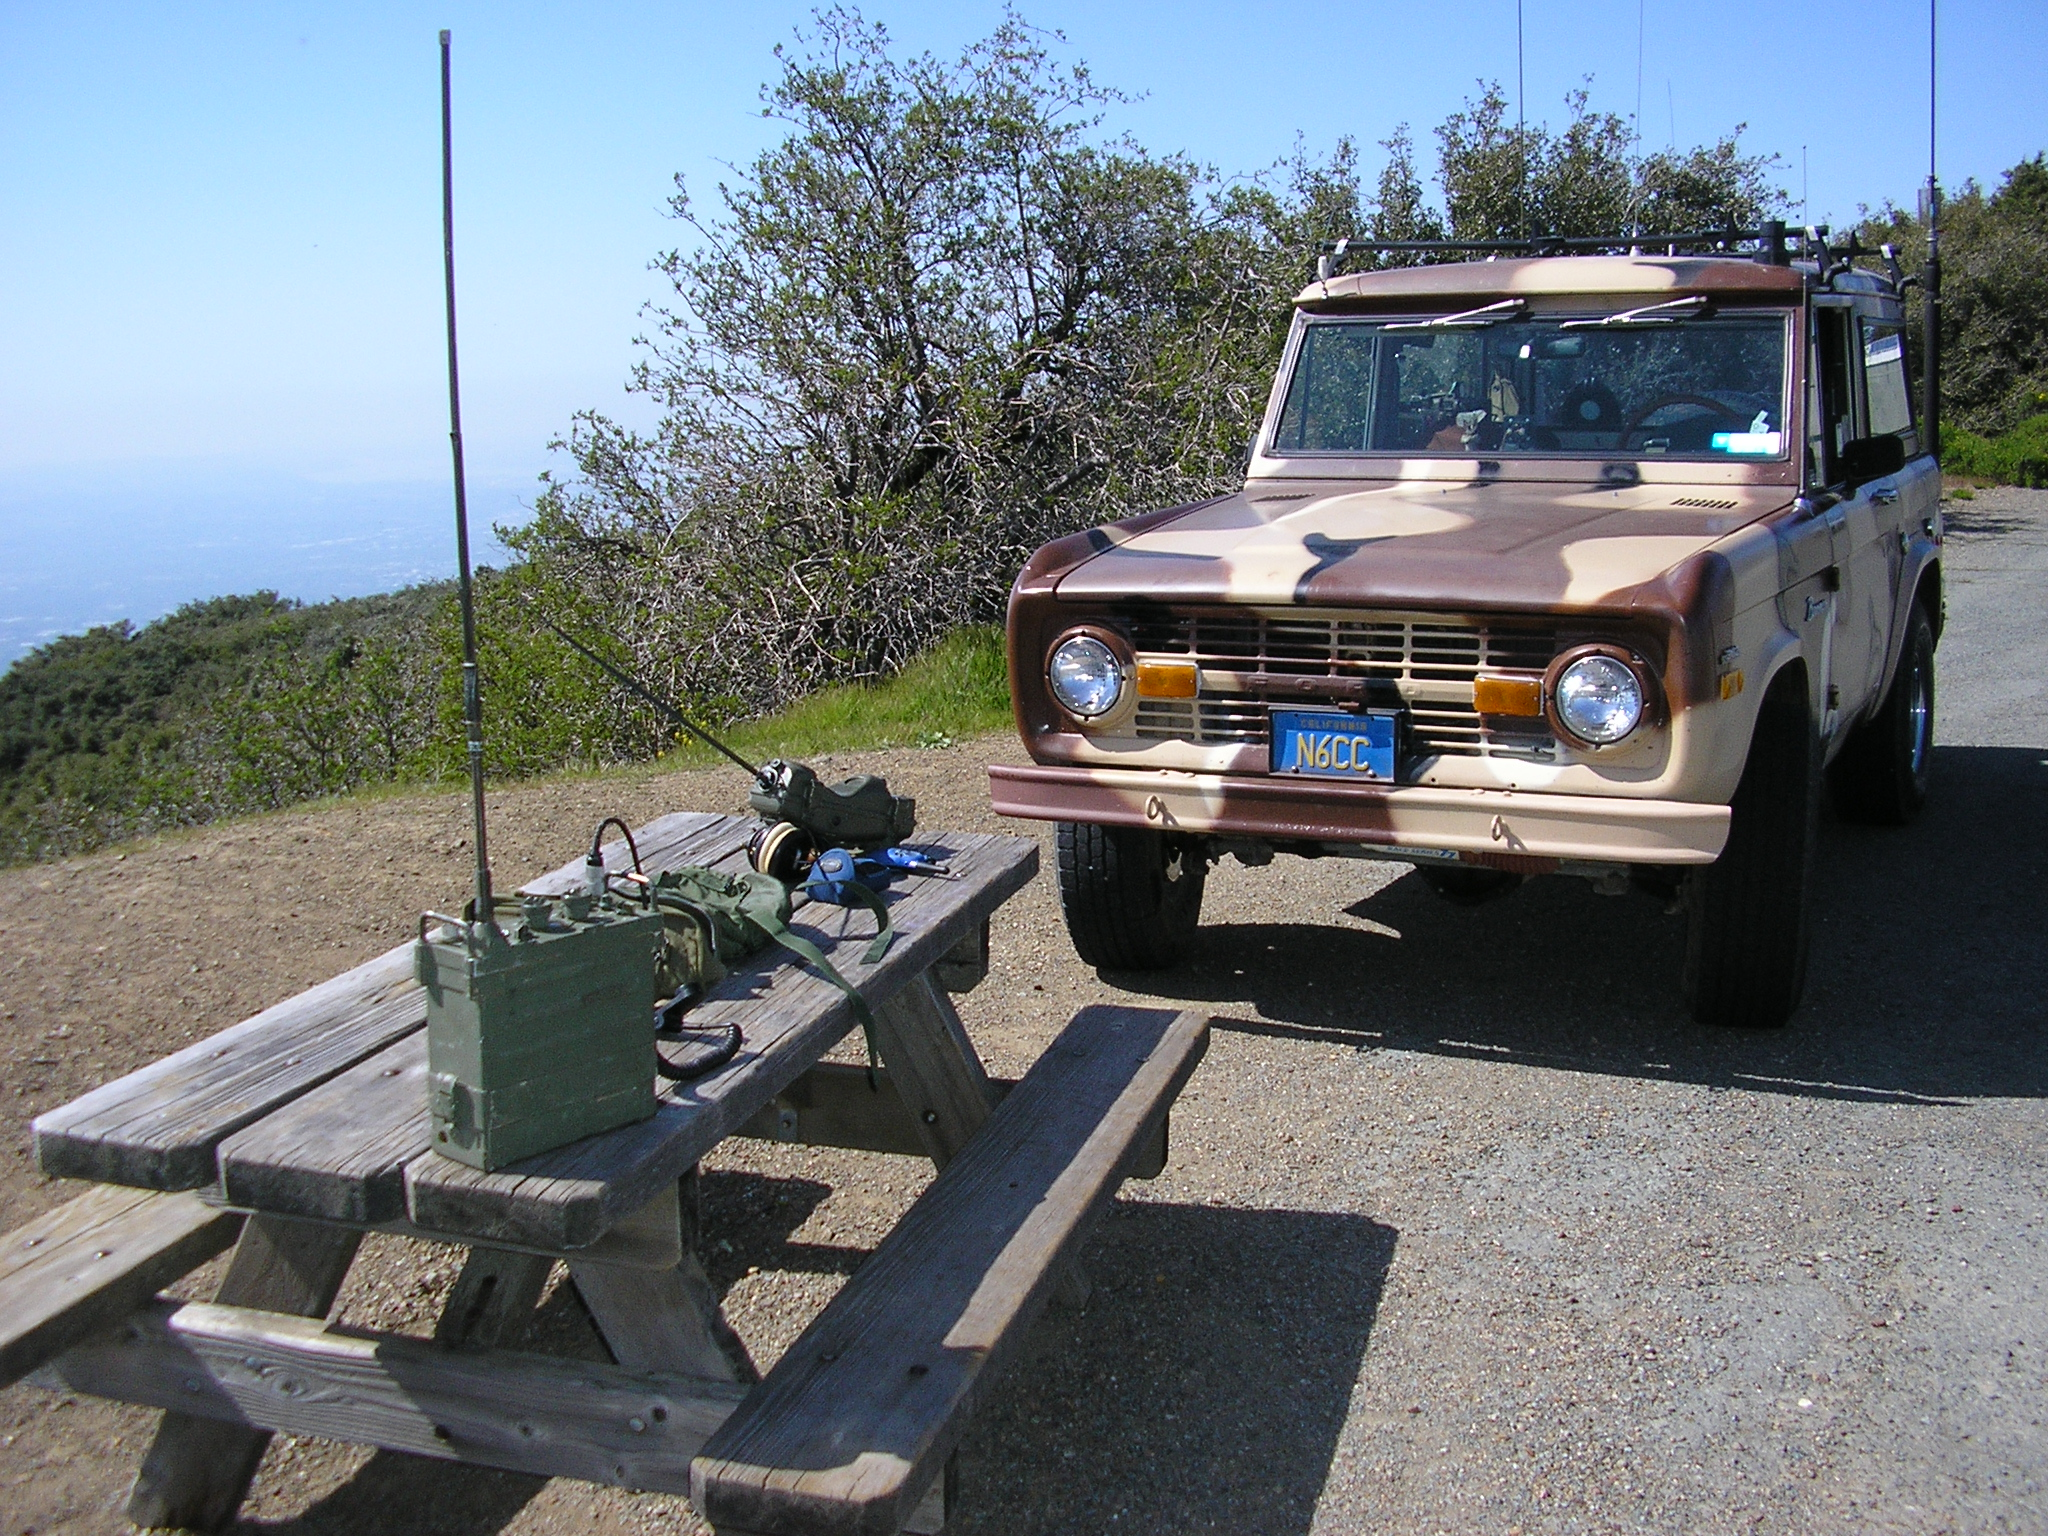 Range Tests on Mt Diablo - PRC-6 and PRC-25